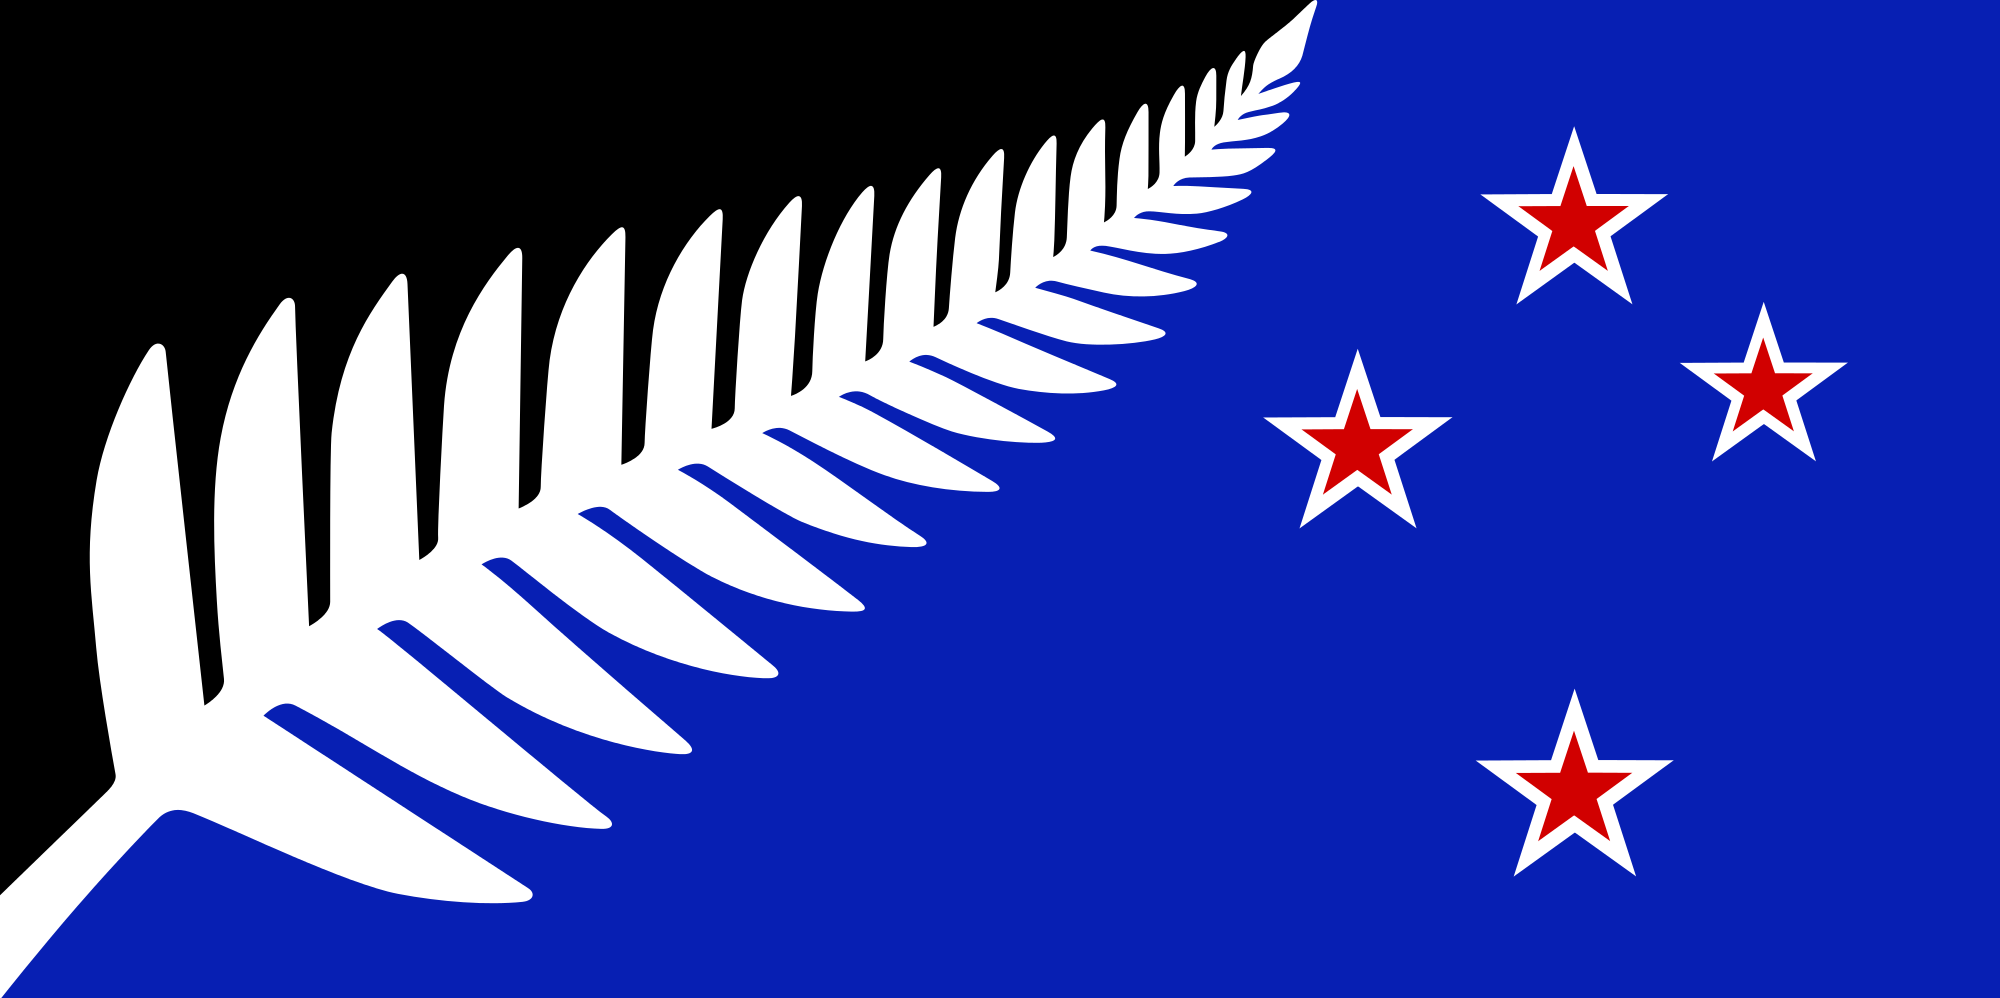 new zealand flag - photo #21